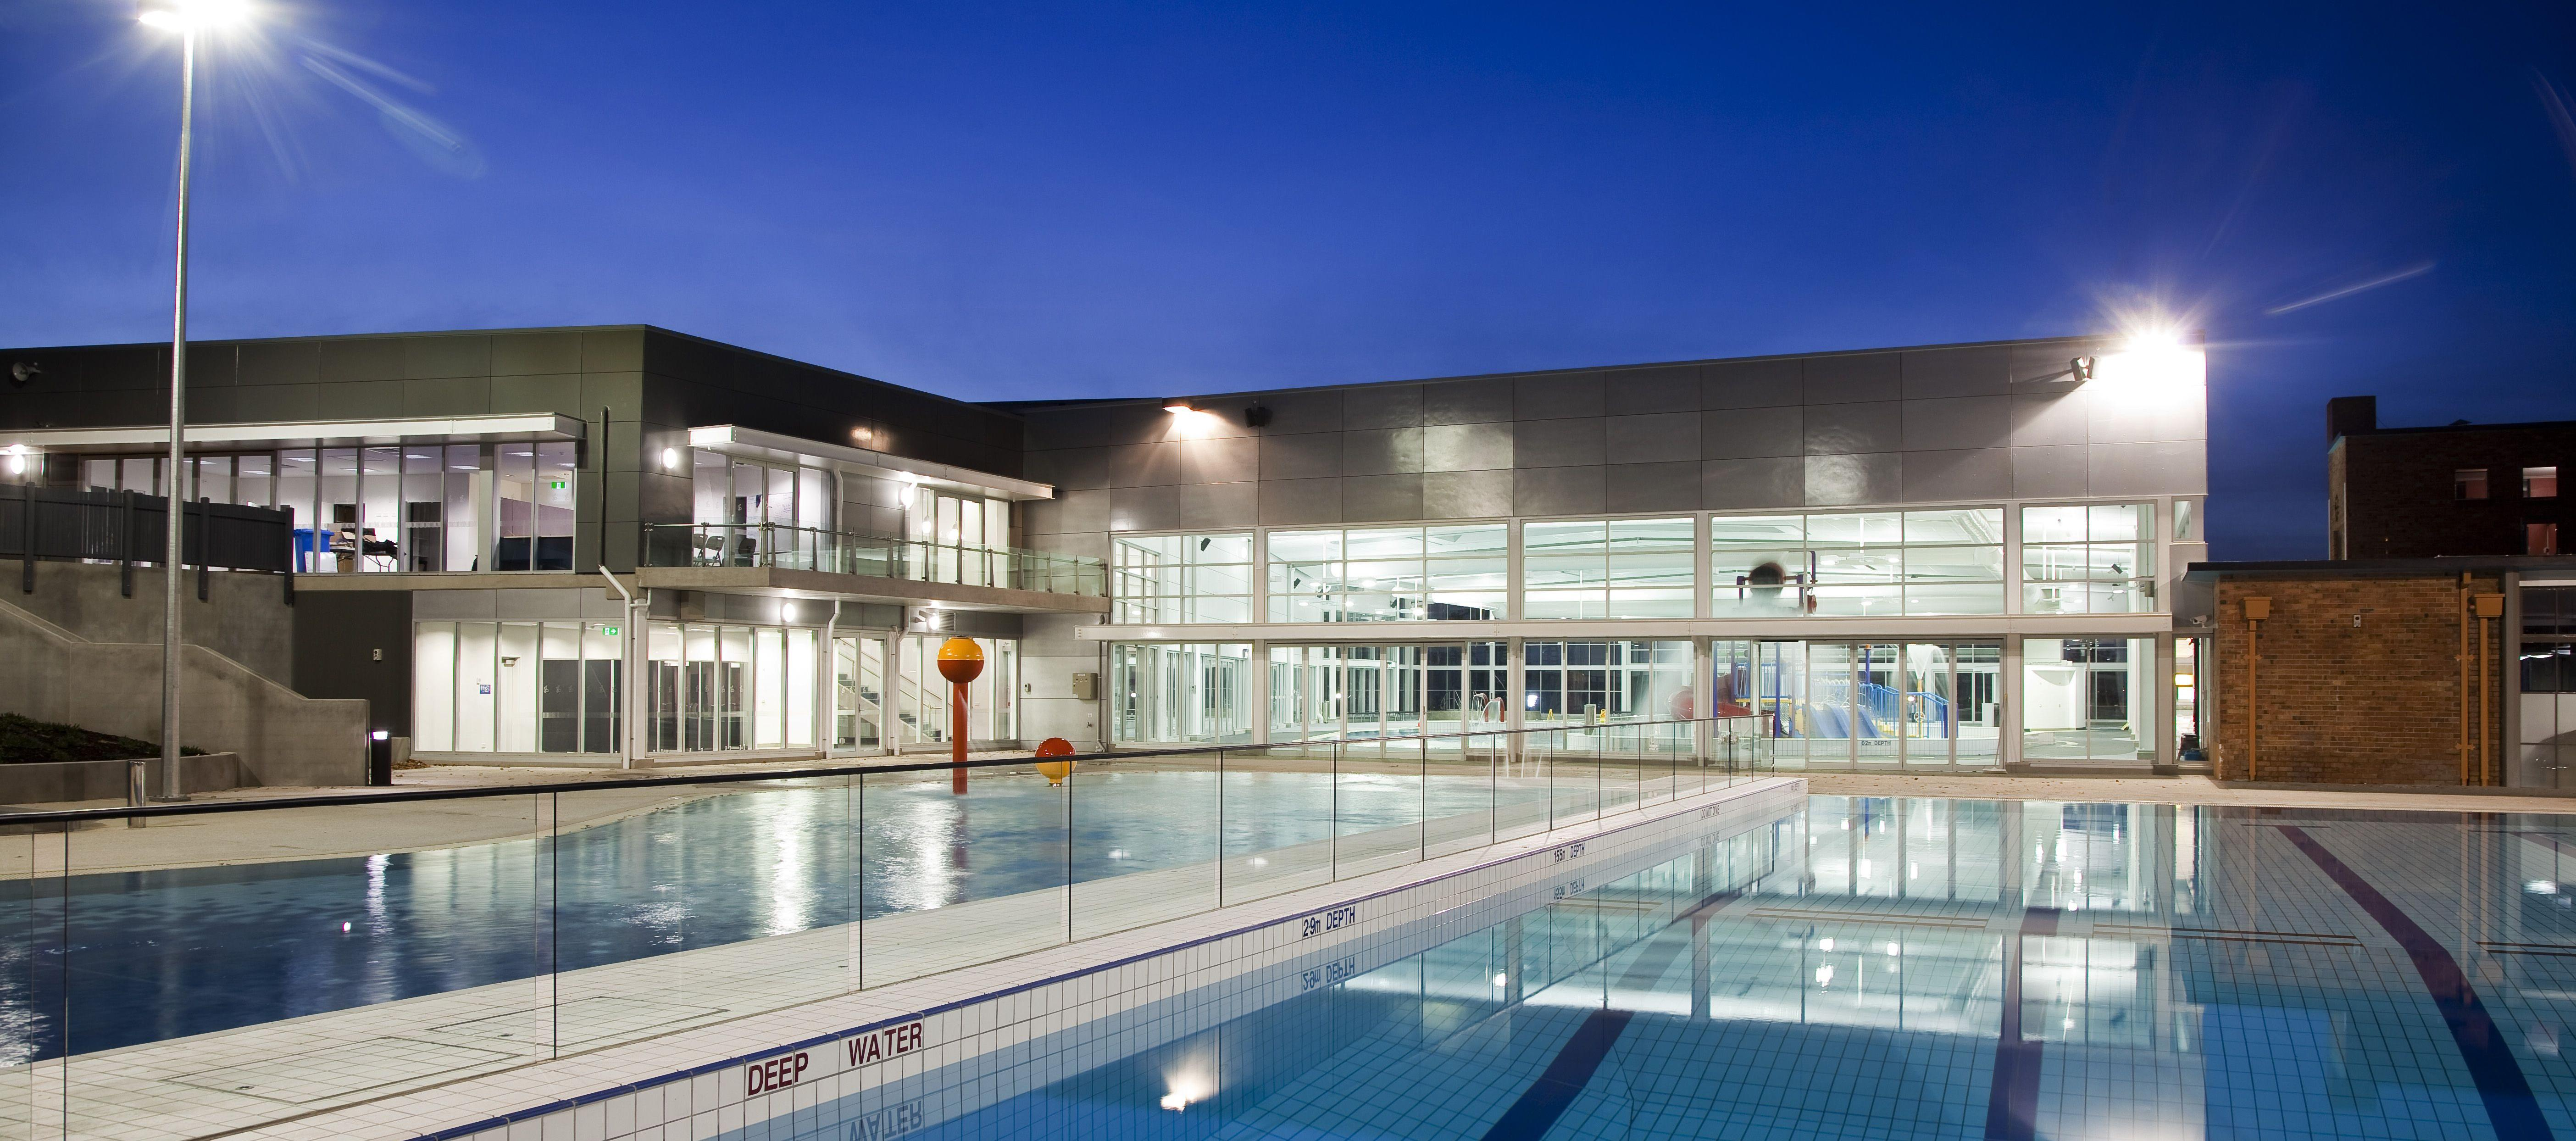 Launceston Aquatic (wecompress.com).jpg